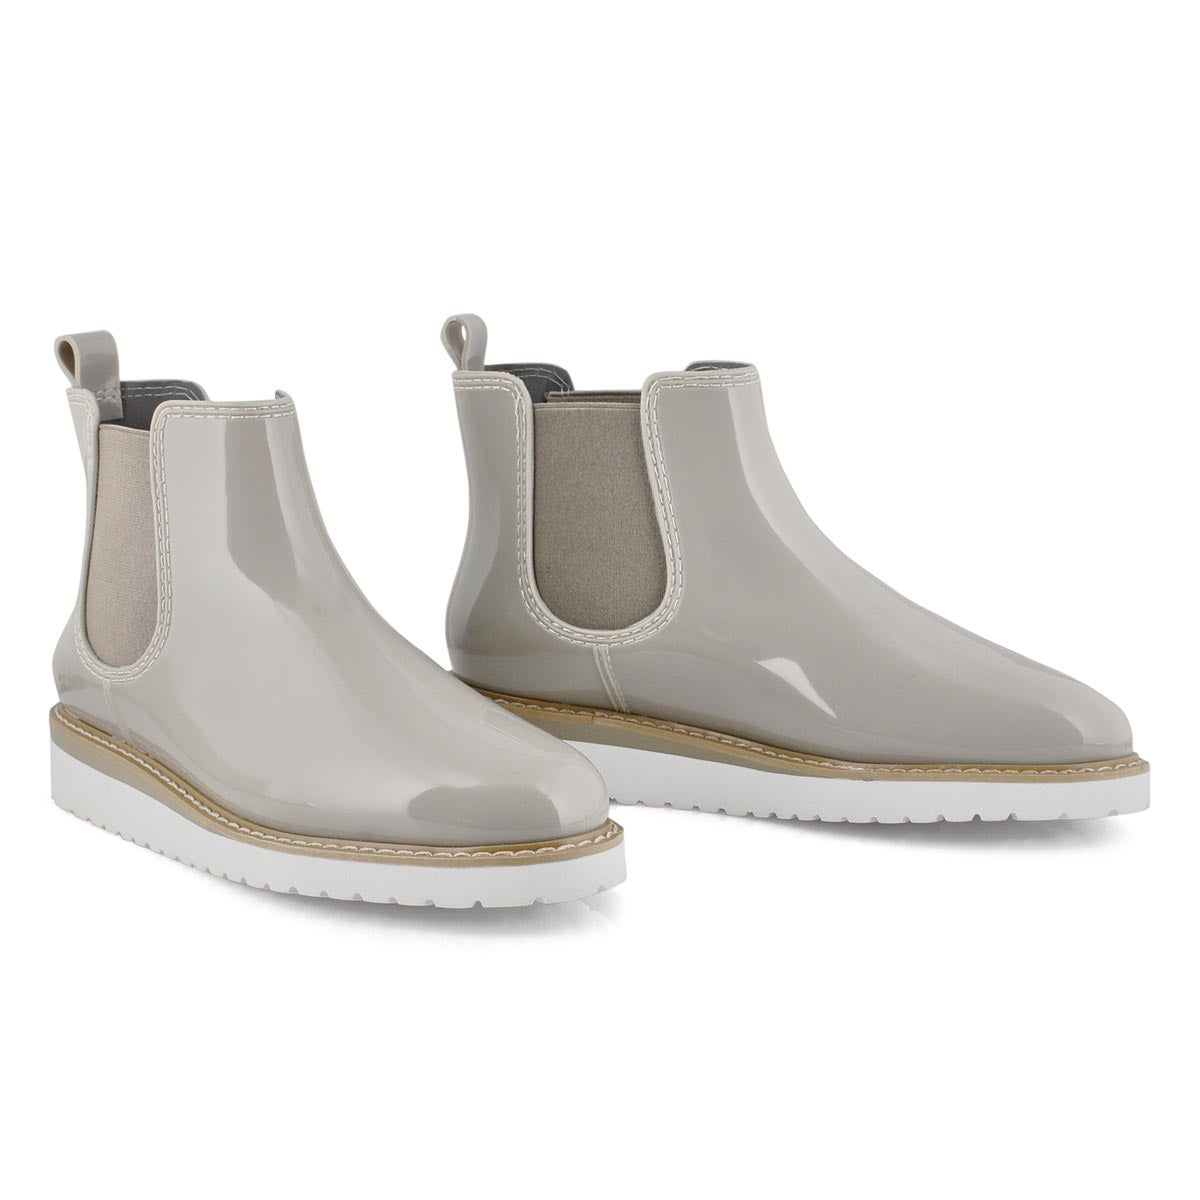 Lds Kensington dove wtpf chelsea boot